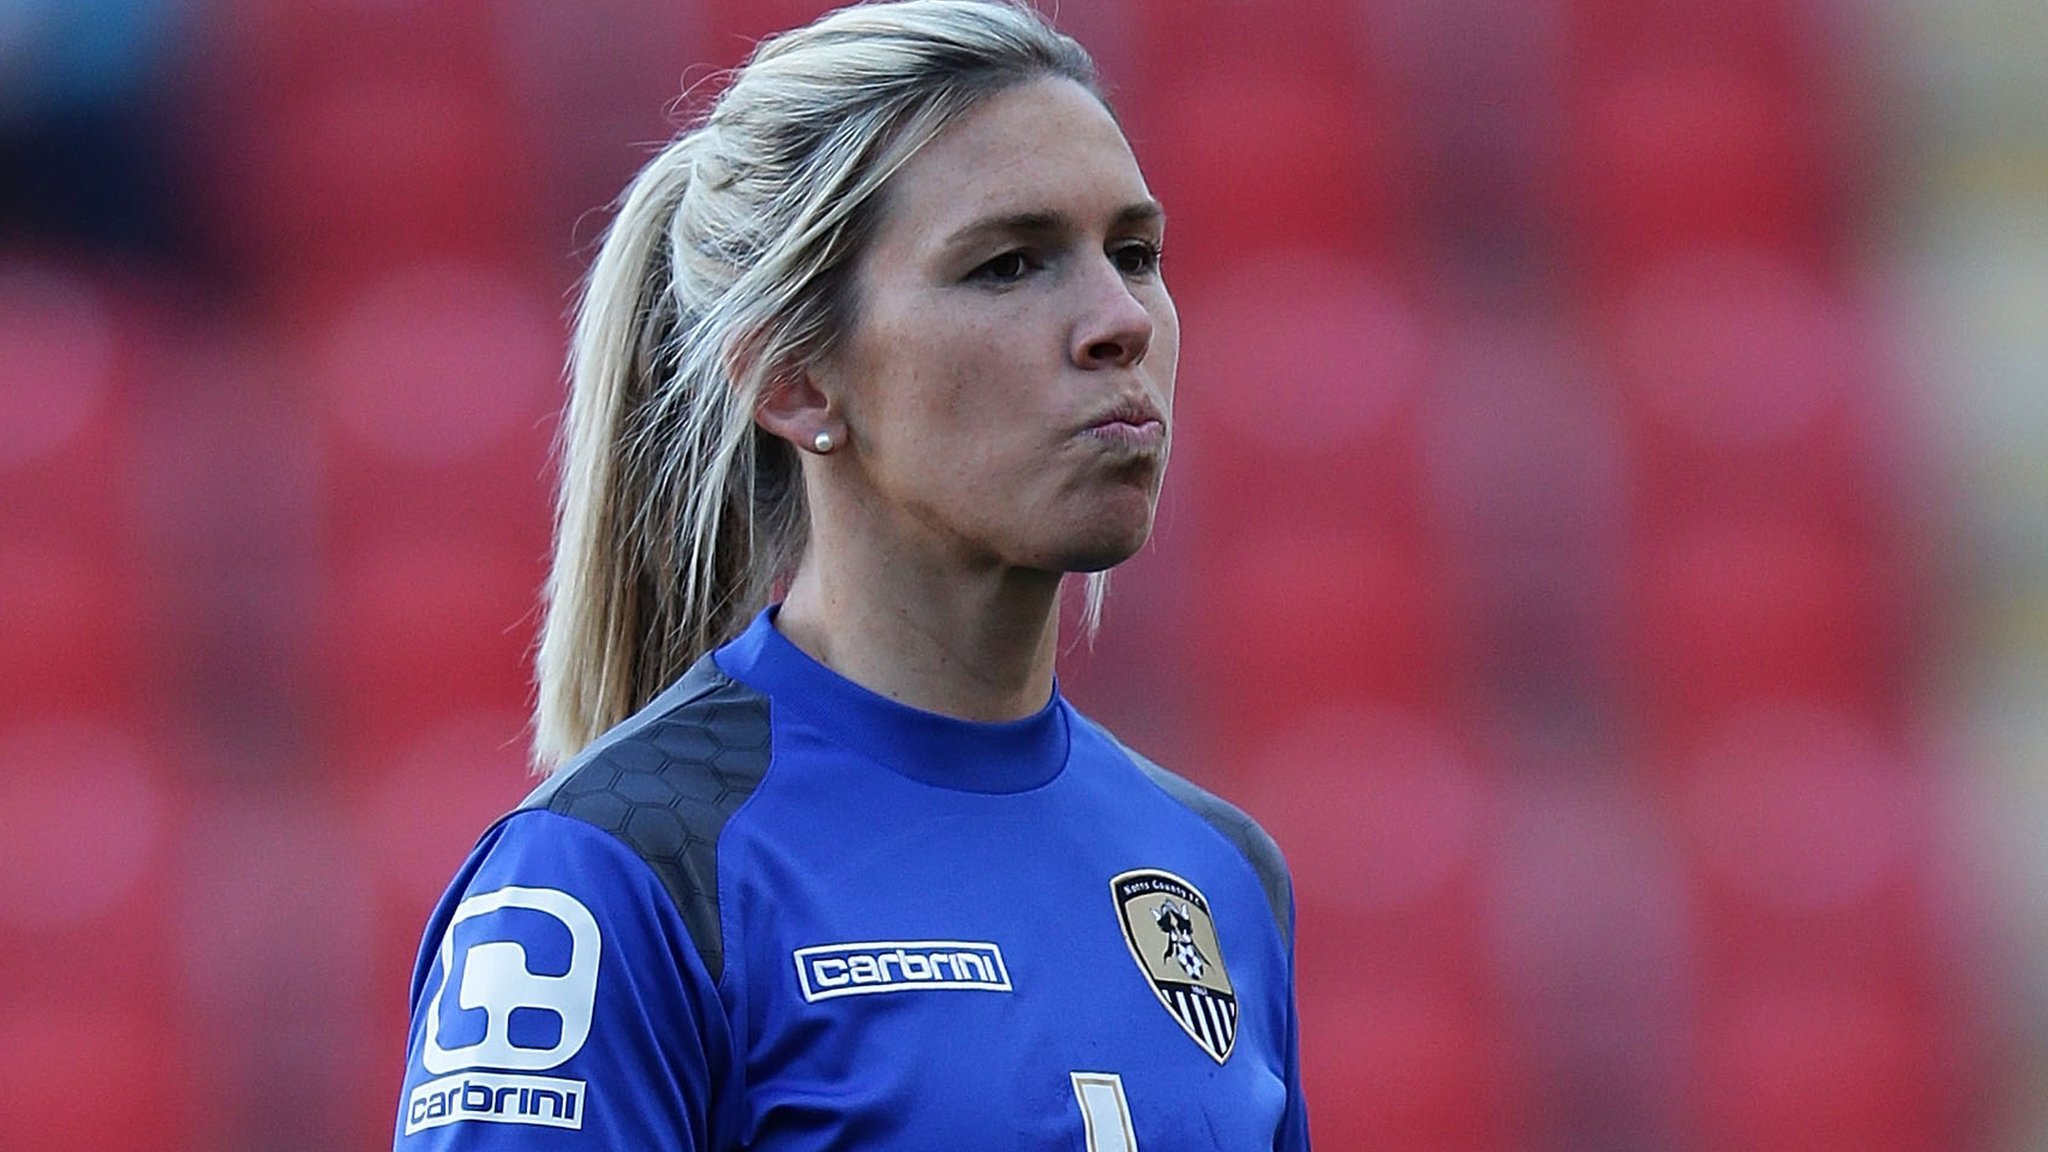 Notts County Ladies players able to join other clubs after liquidation